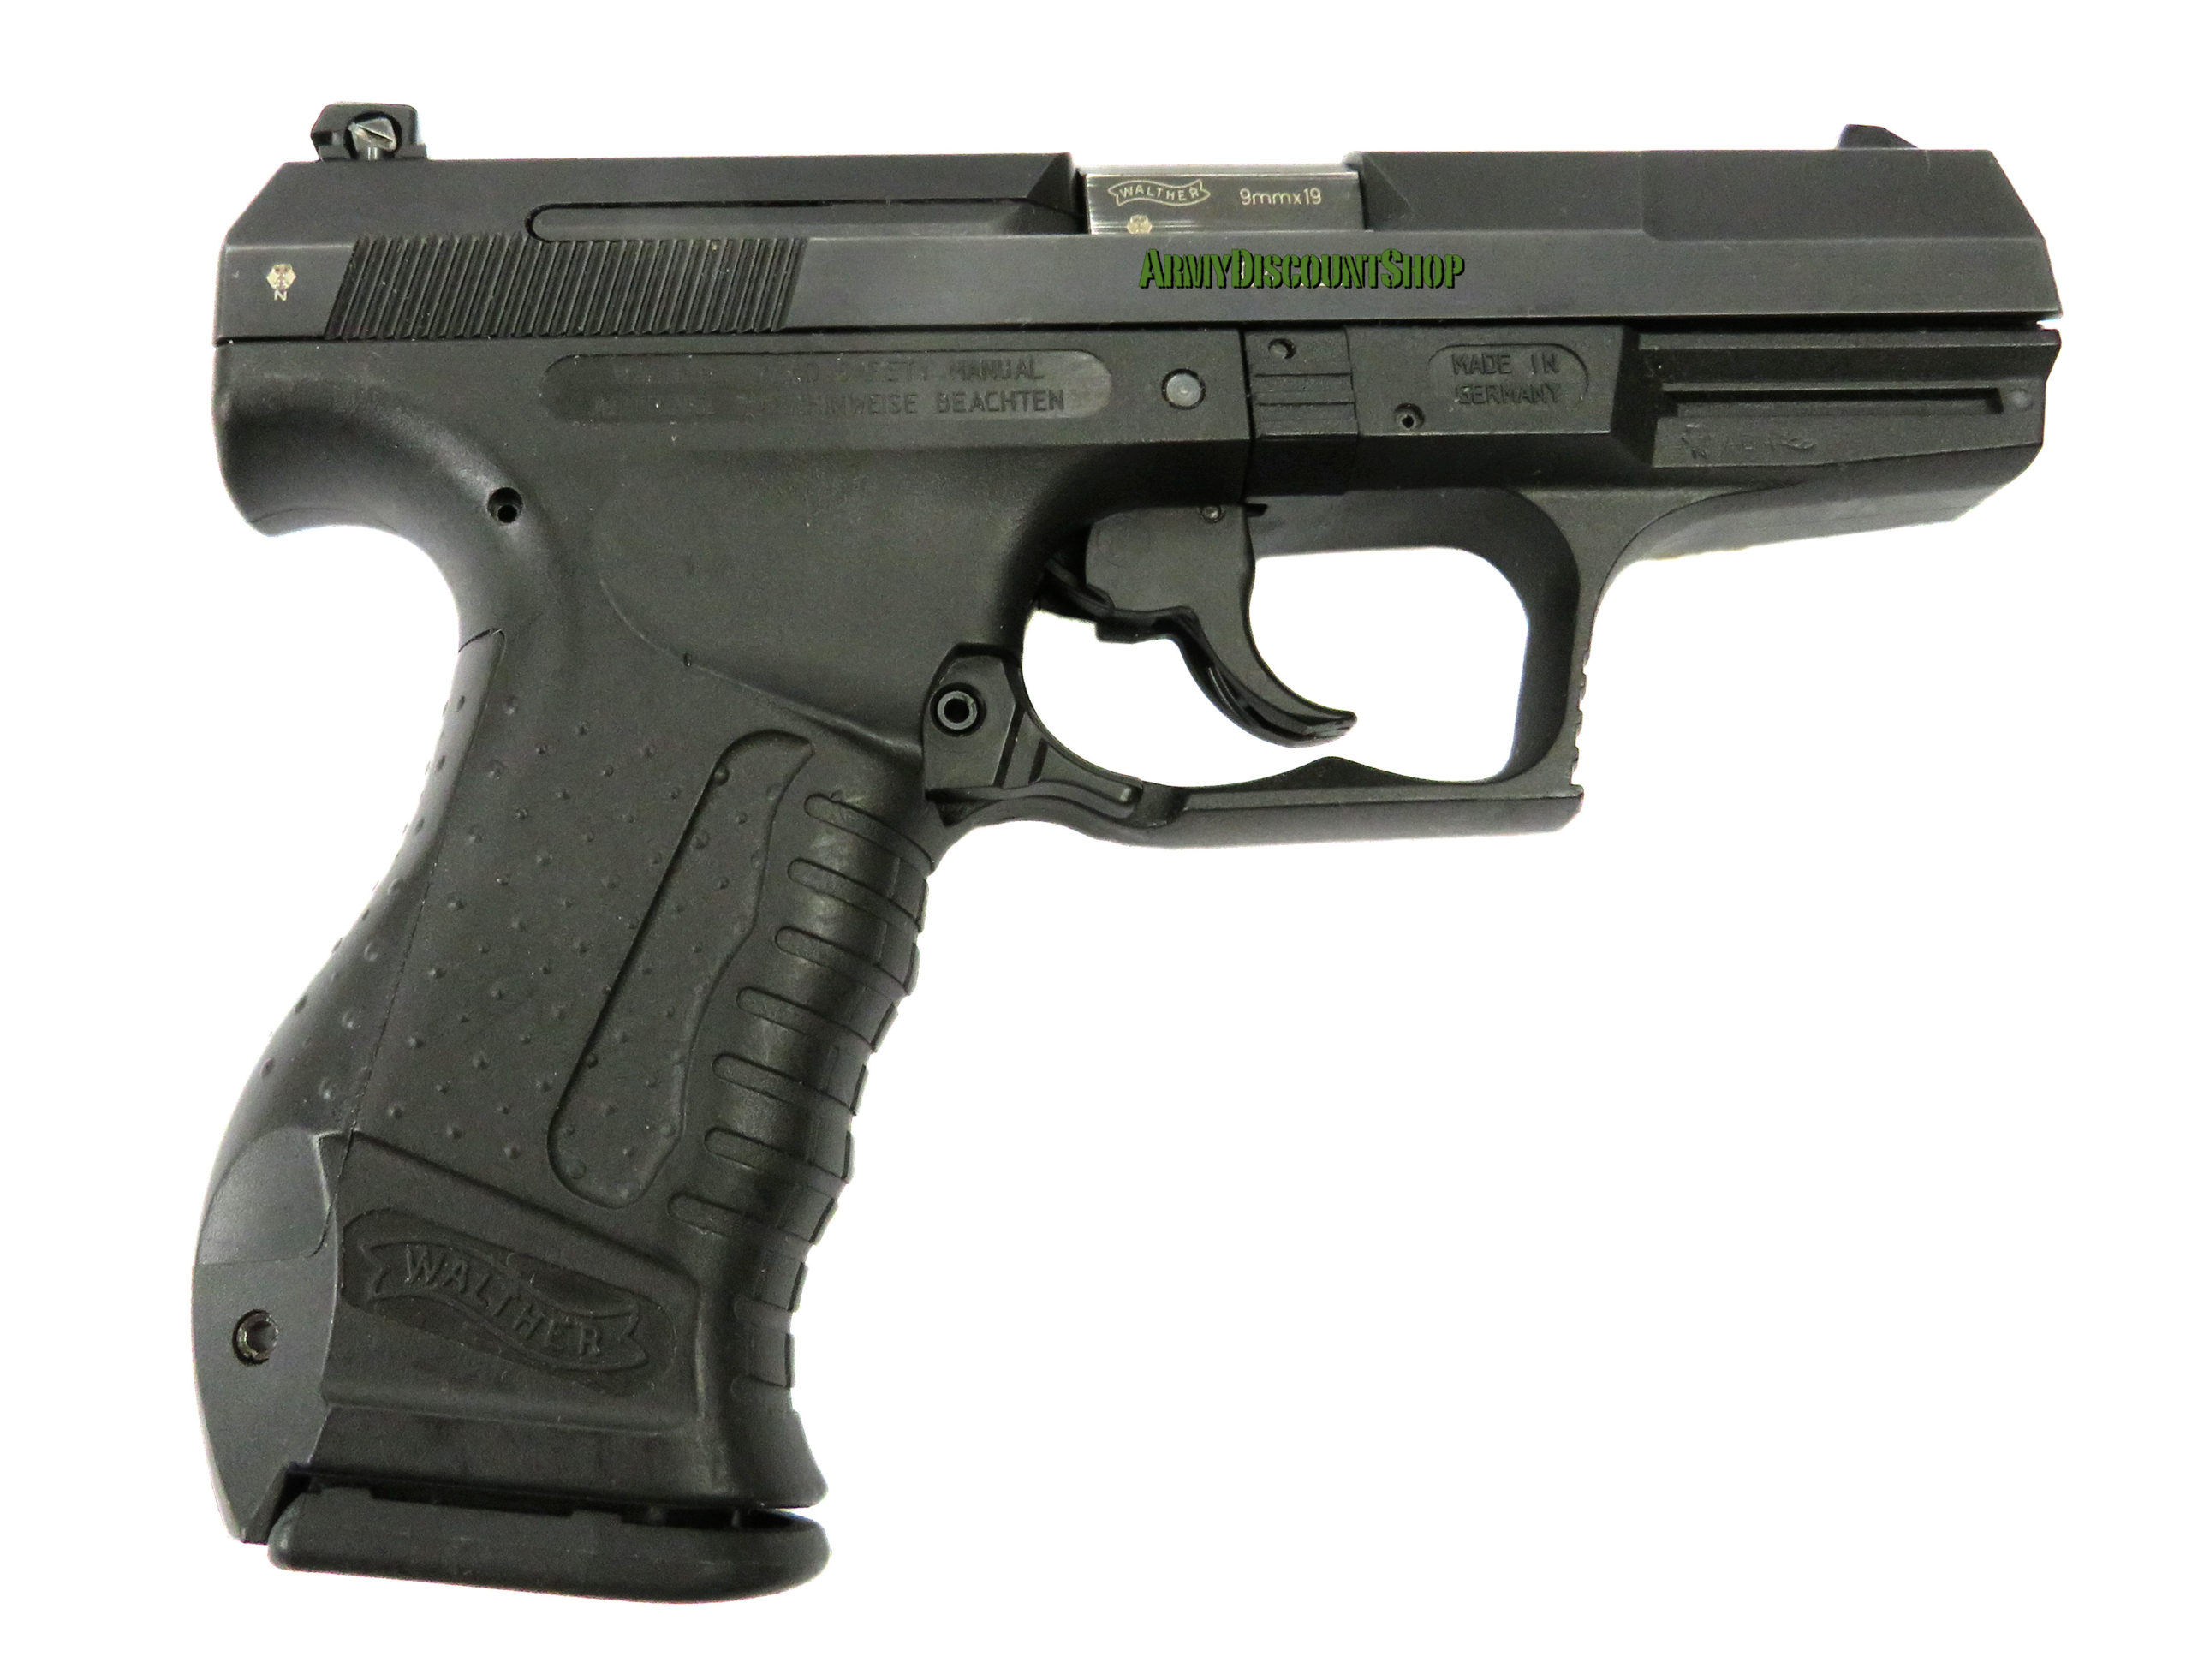 WALTHER P99 calibre 9x19mm